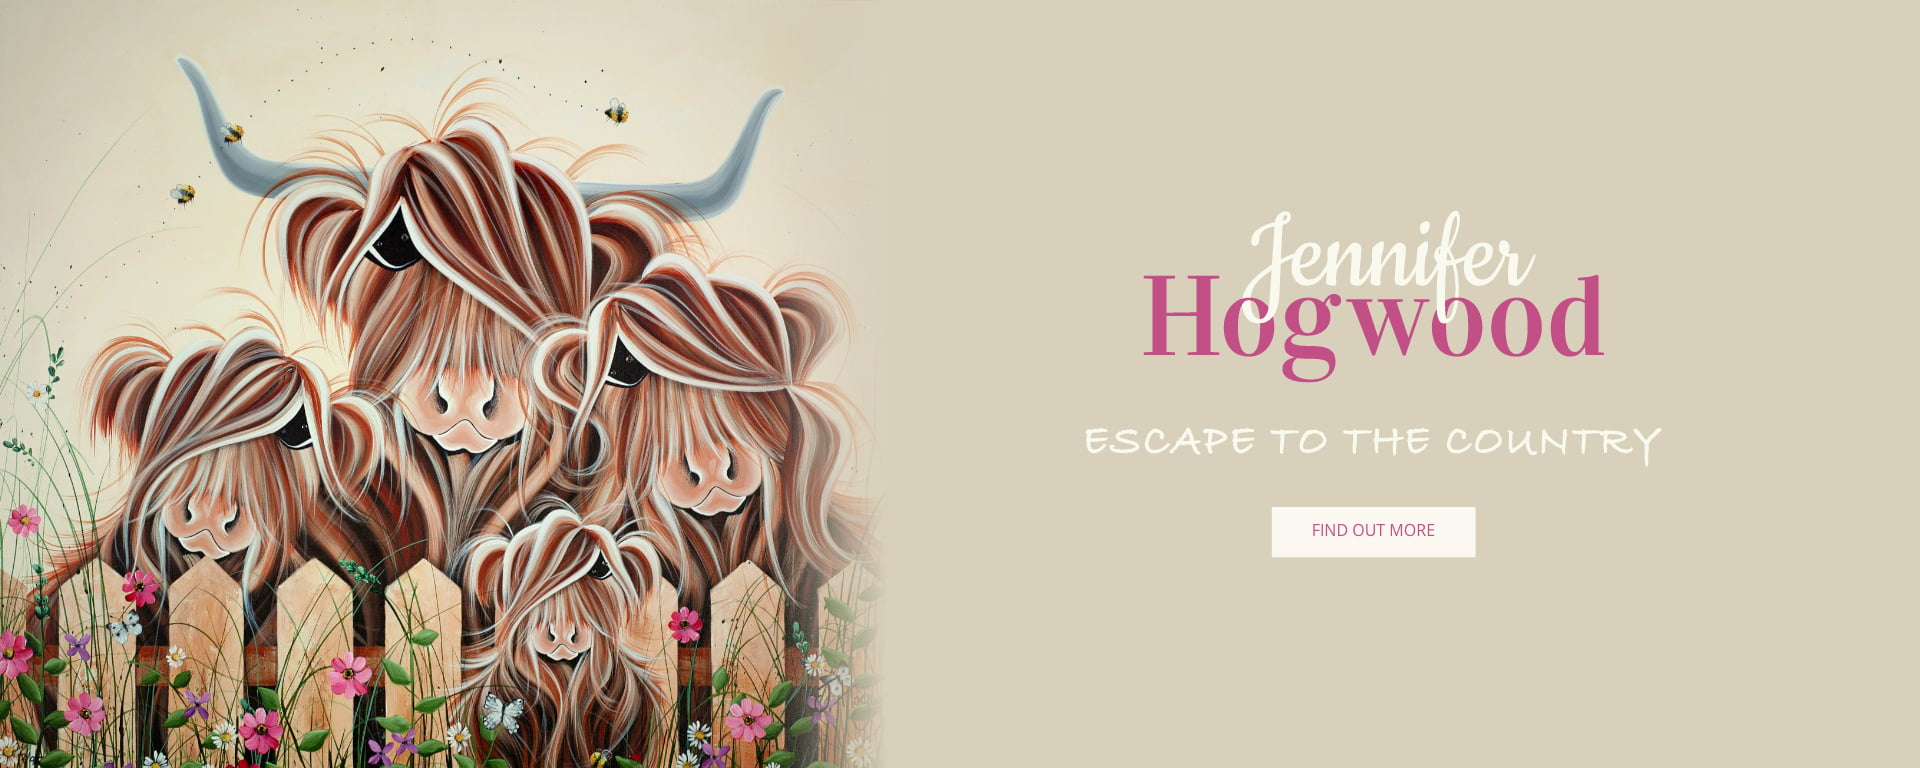 'Escape to the Country' by Jennifer Hogwood